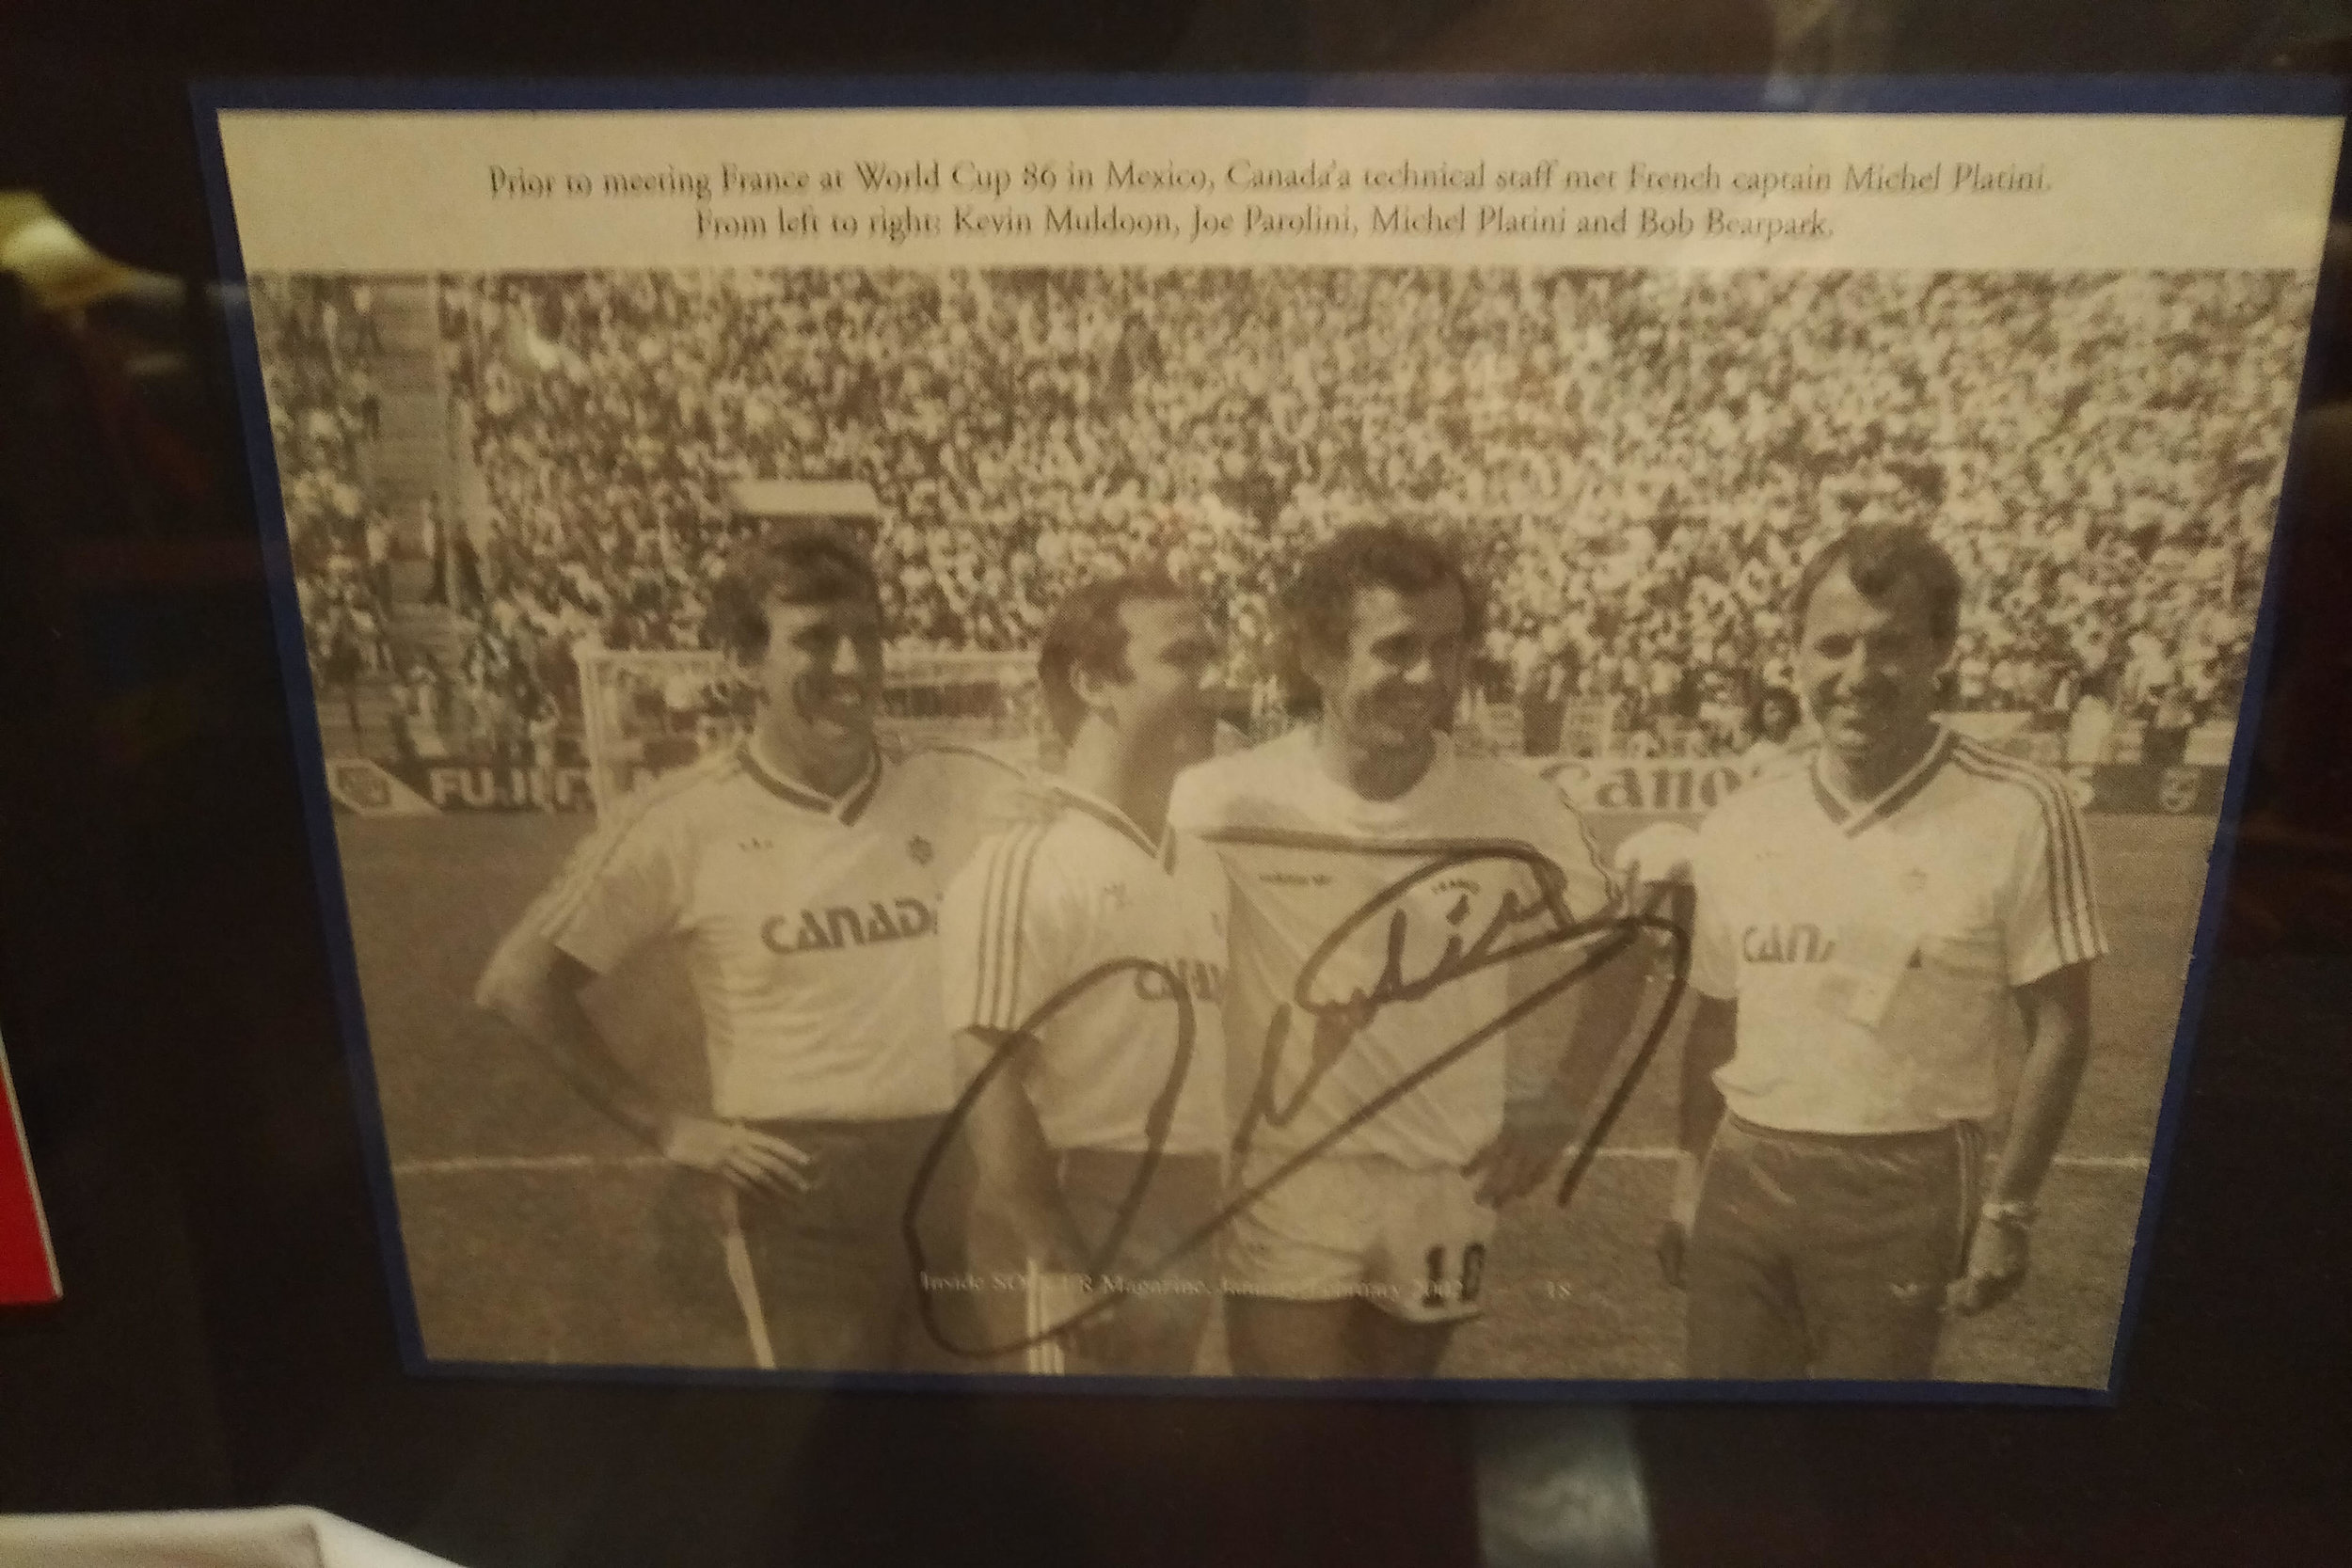 Photo with France + Juventus Captain, Michel Platini, prior to kick off between Canada & France in Azteca Stadium at the 1986 World Cup in Mexico. L-R (Kevin Muldoon, Joe Parolini, Michel Platini, & Bob Bearpark).